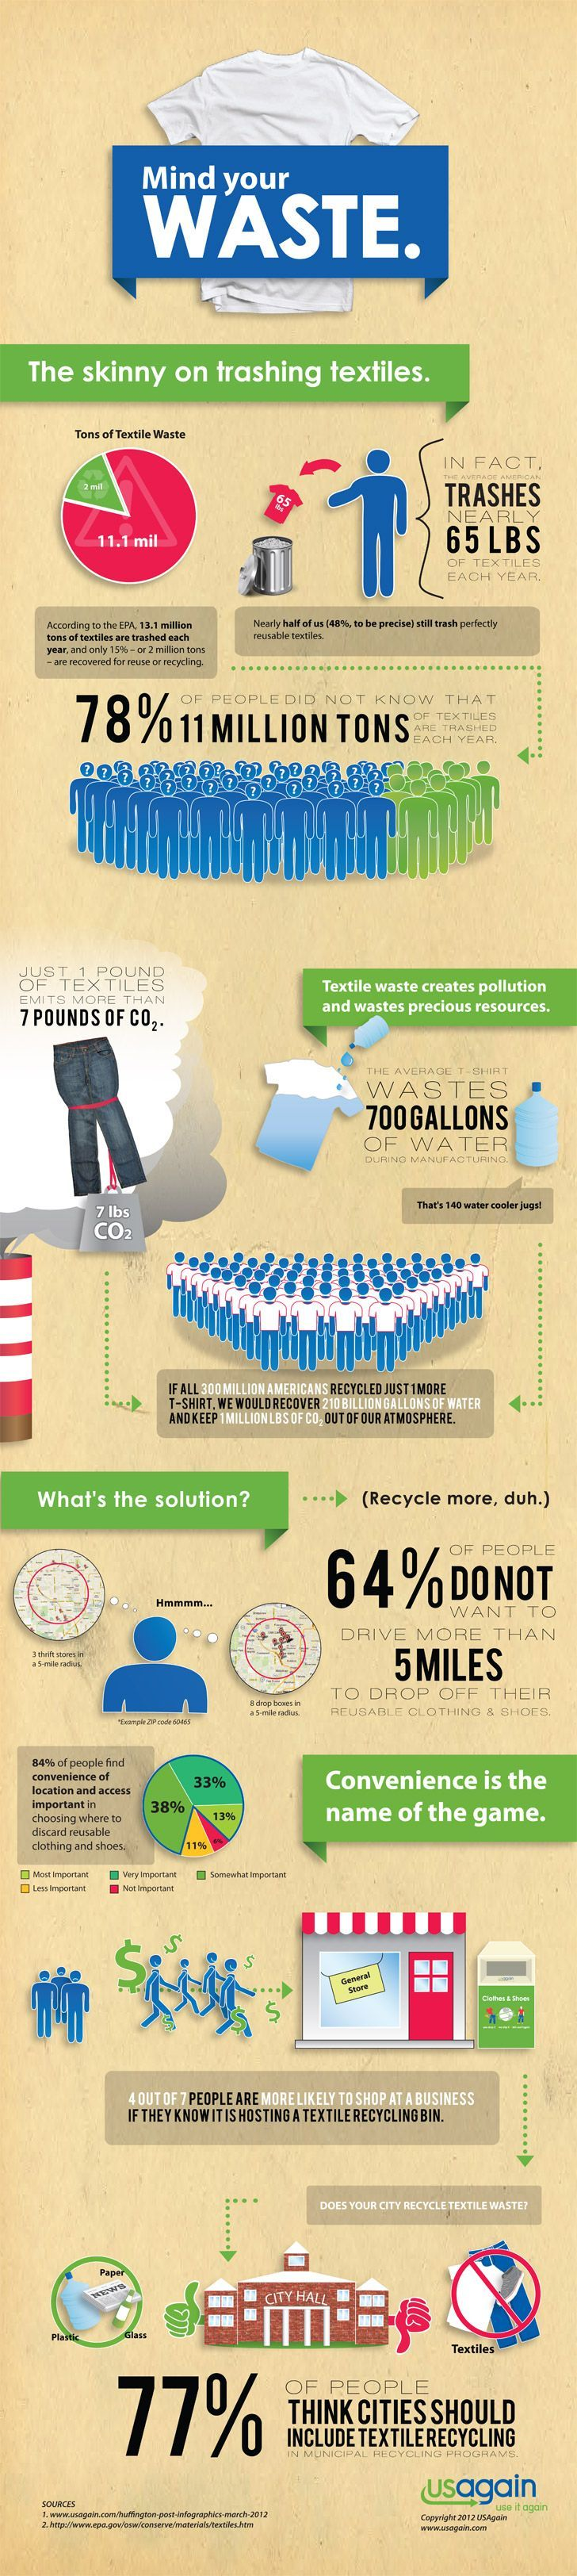 How Many Pounds of Textiles Are Trashed Every Year? How Many Pounds of Textiles Are Trashed Every Year? [Infographic]